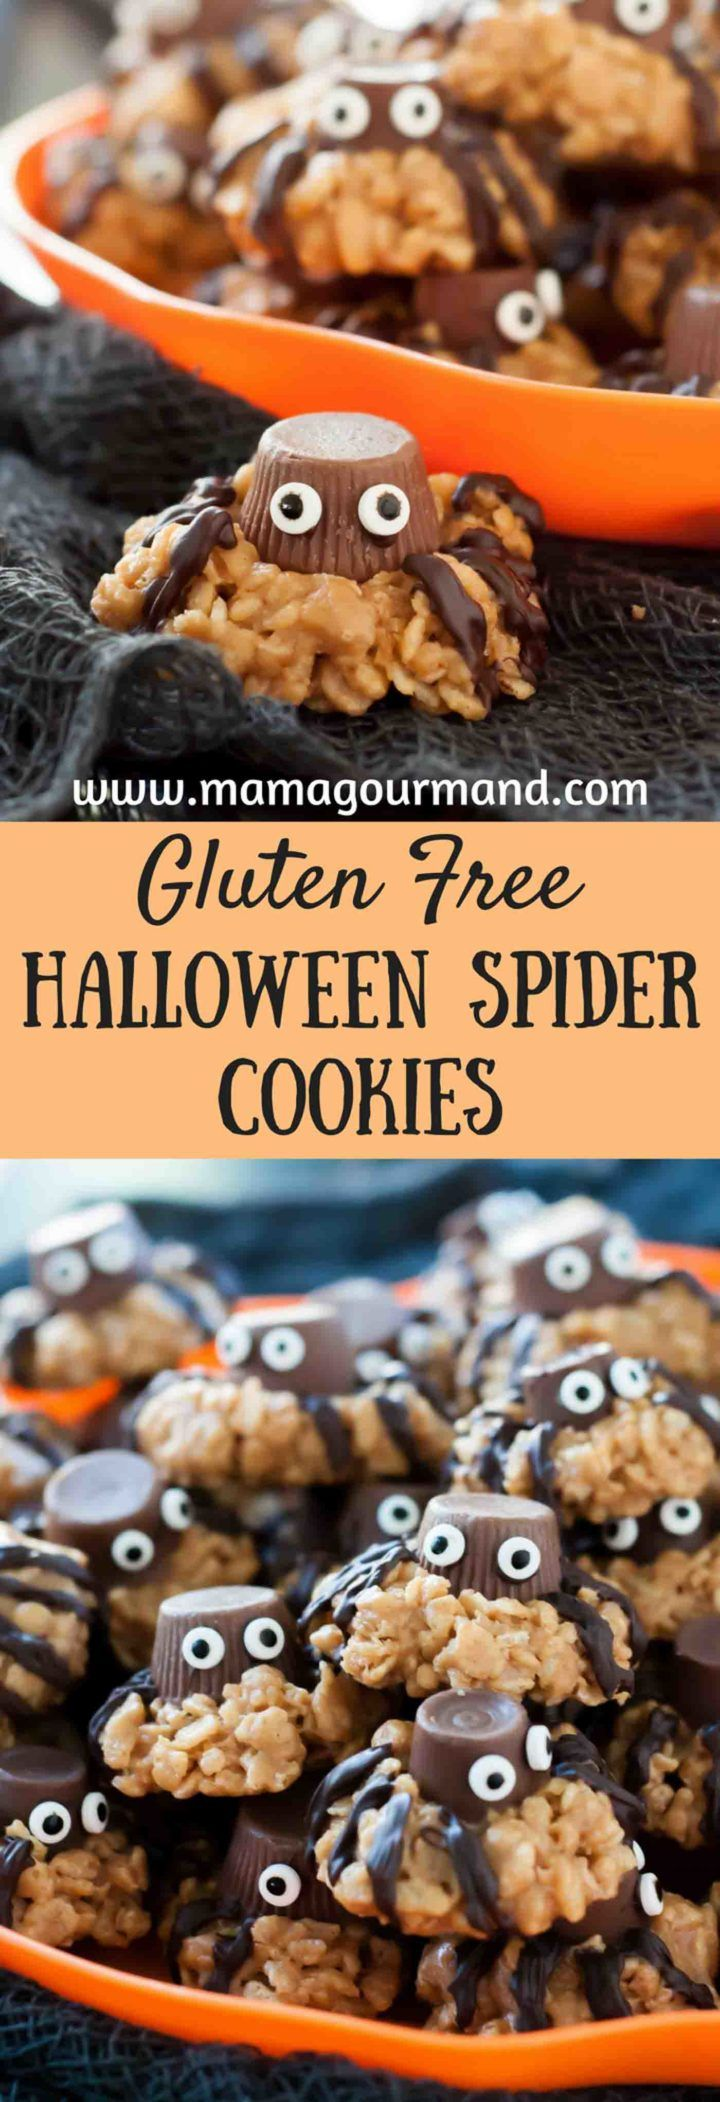 Gluten Free Halloween Spider Cookies are a deliciously chewy, peanut butter treat ALL your party guests will enjoy! http://www.mamagourmand.com